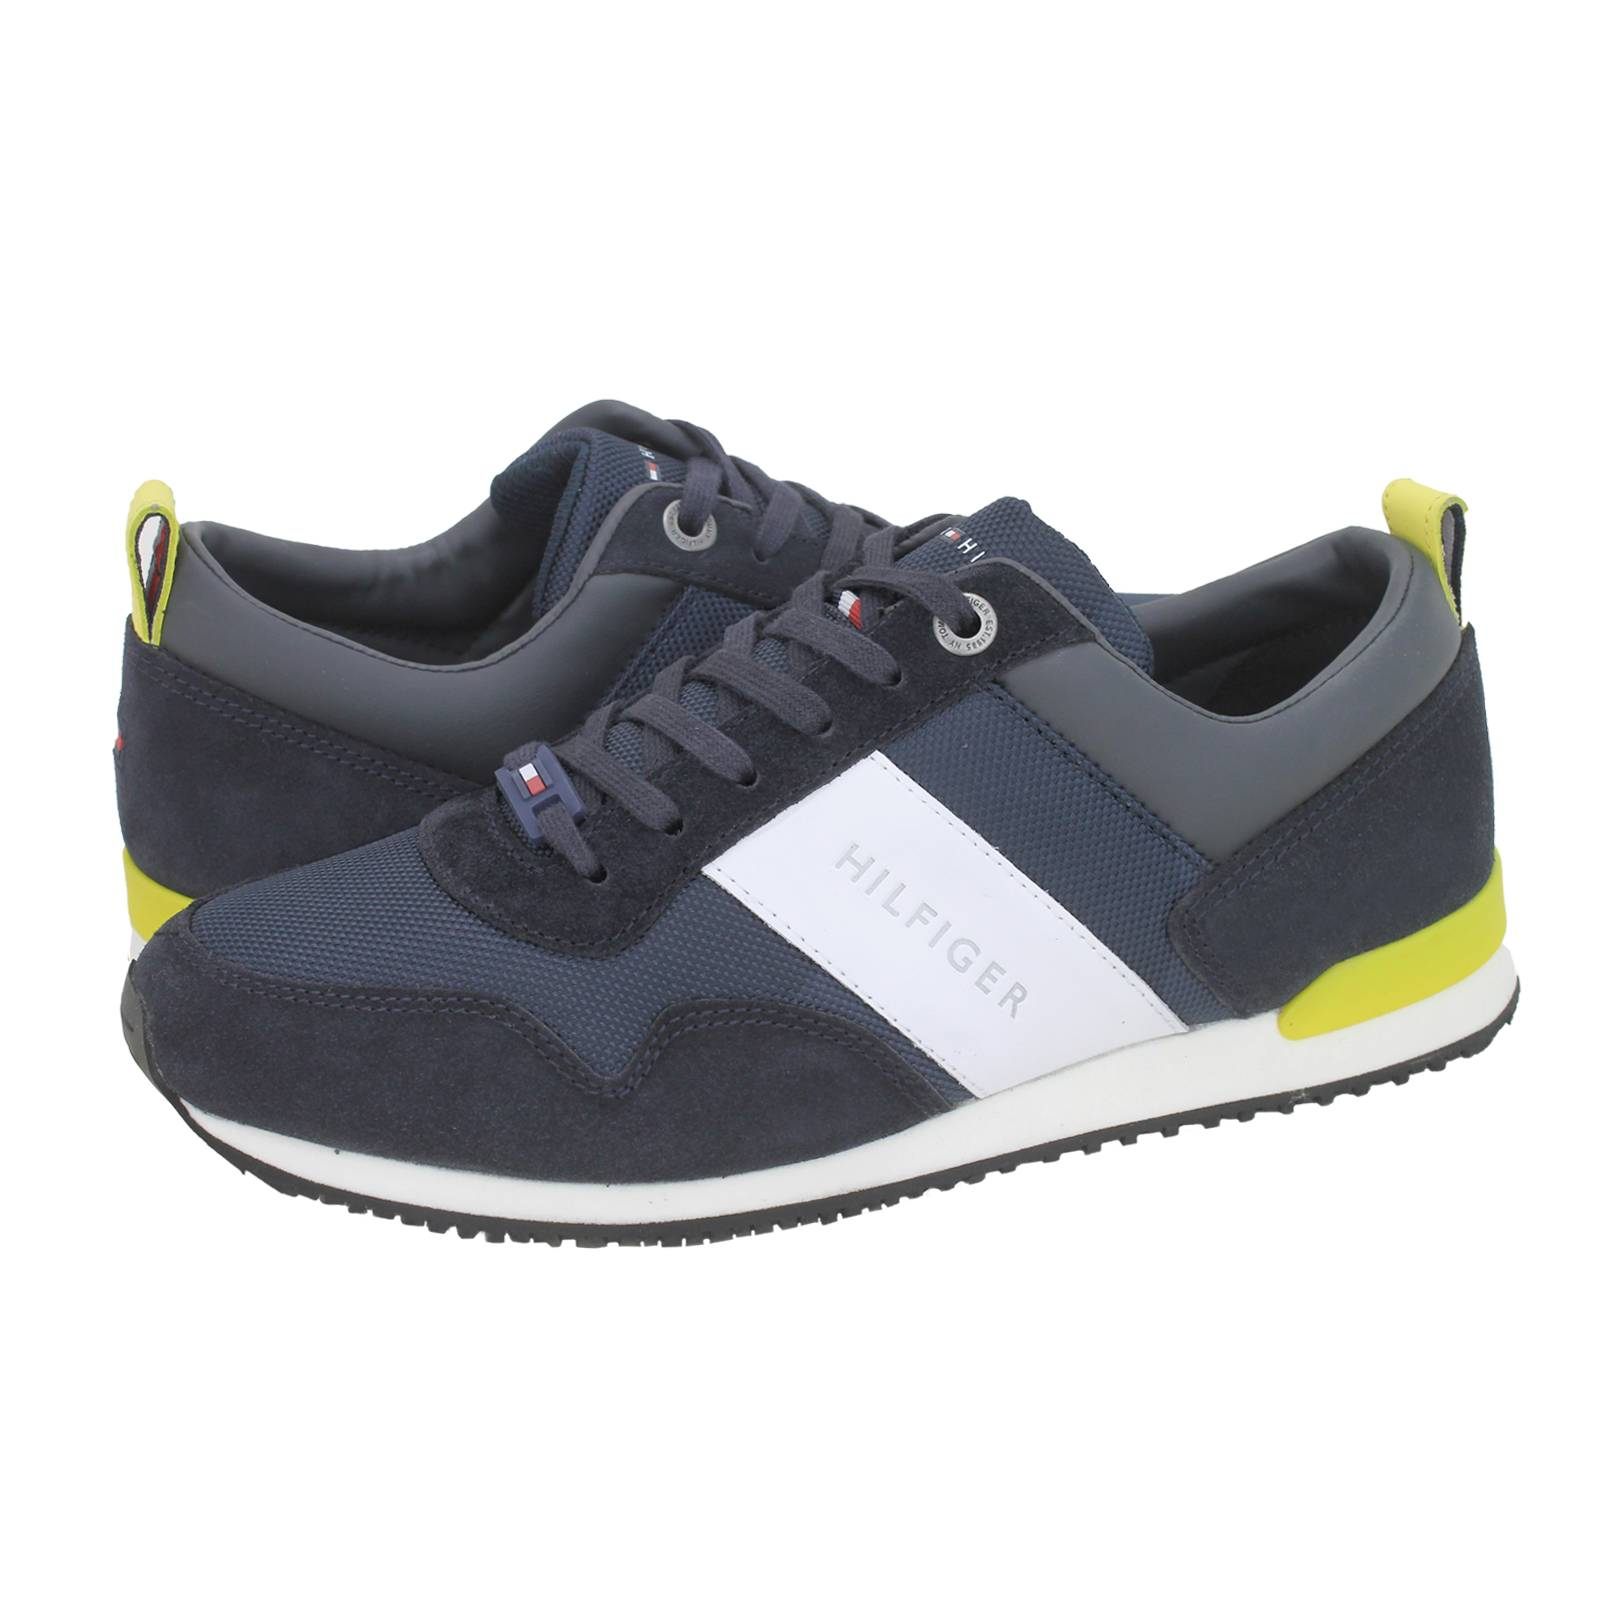 13c056067fdc Tommy Hilfiger Iconic Material Mix Runner casual shoes. Iconic Material Mix  Runner